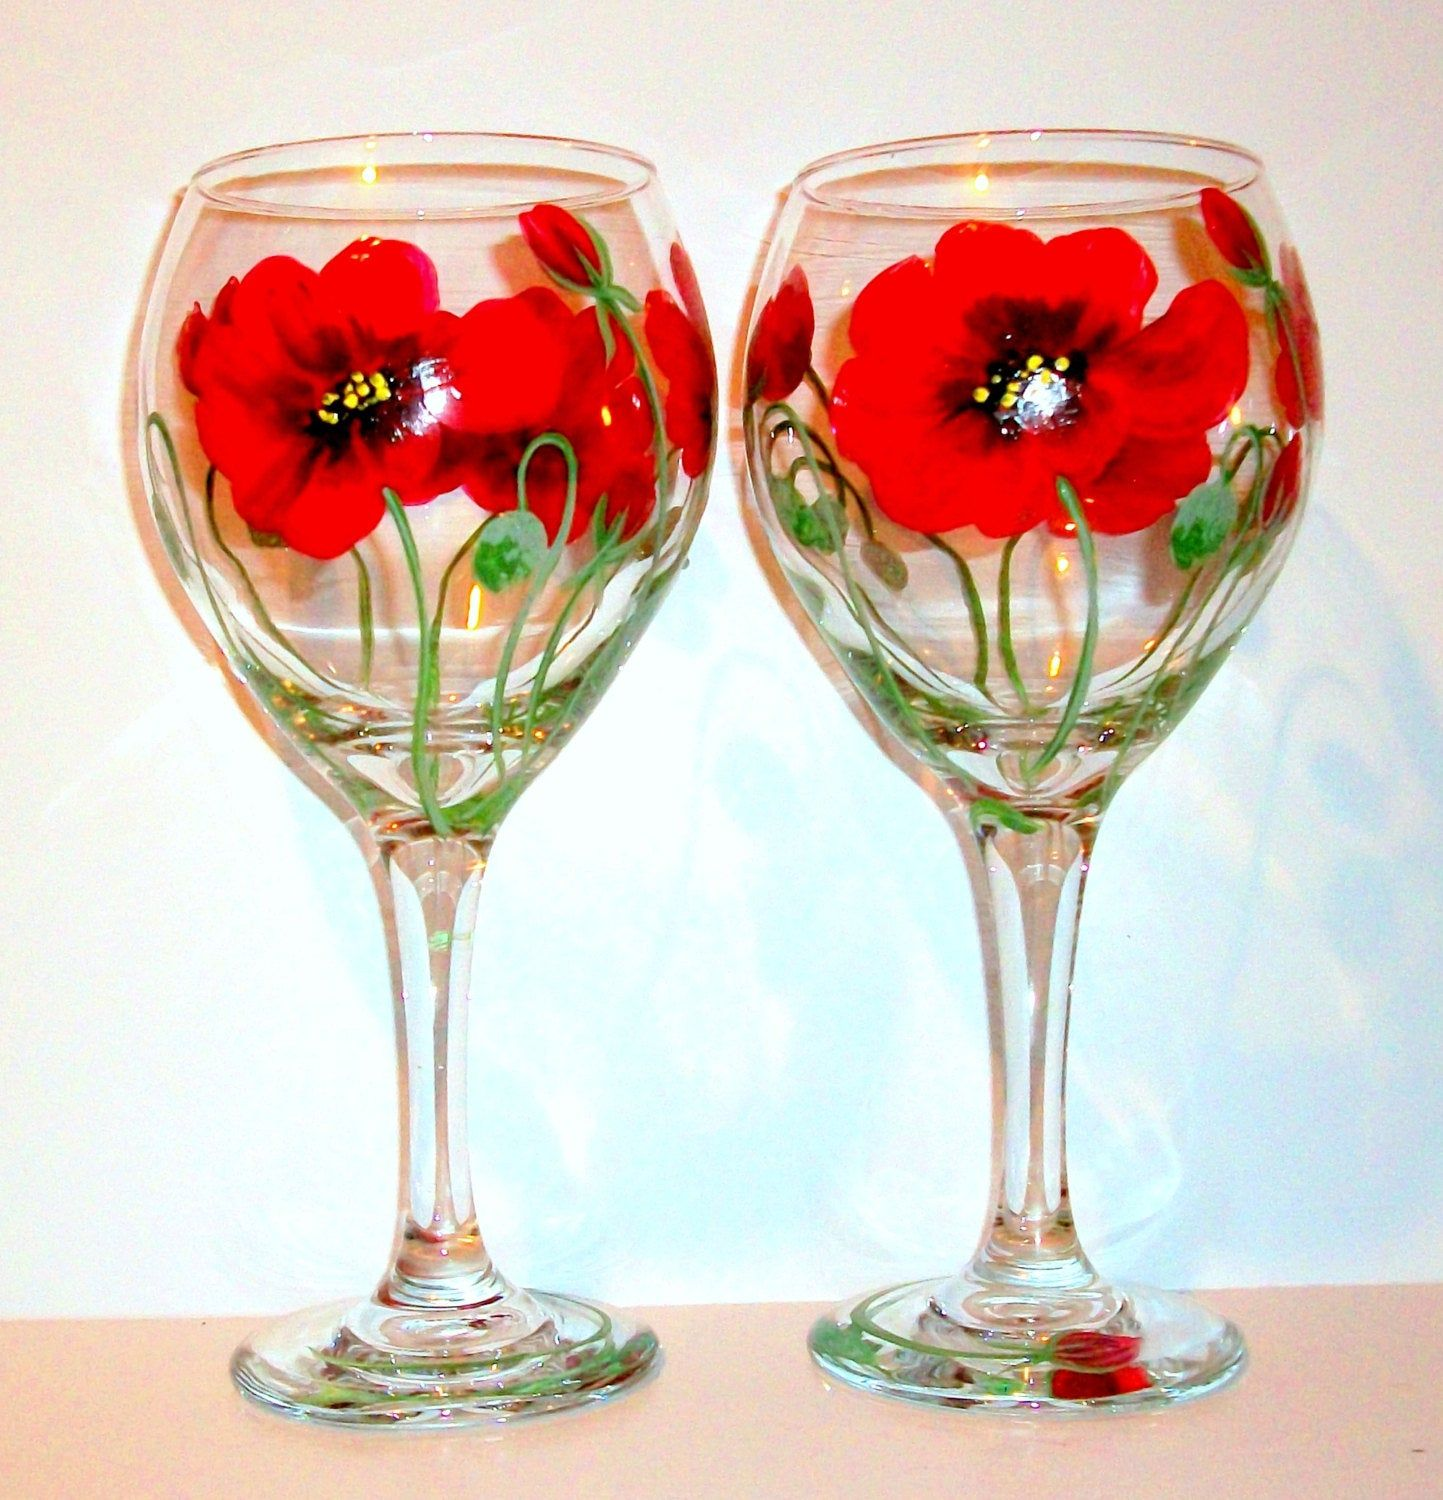 Red Poppies Flowers Poppy Hand Painted Wine Glasses Wedding Etsy In 2020 Hand Painted Wine Glasses Wedding Hand Painted Wine Glasses Wedding Wine Glasses